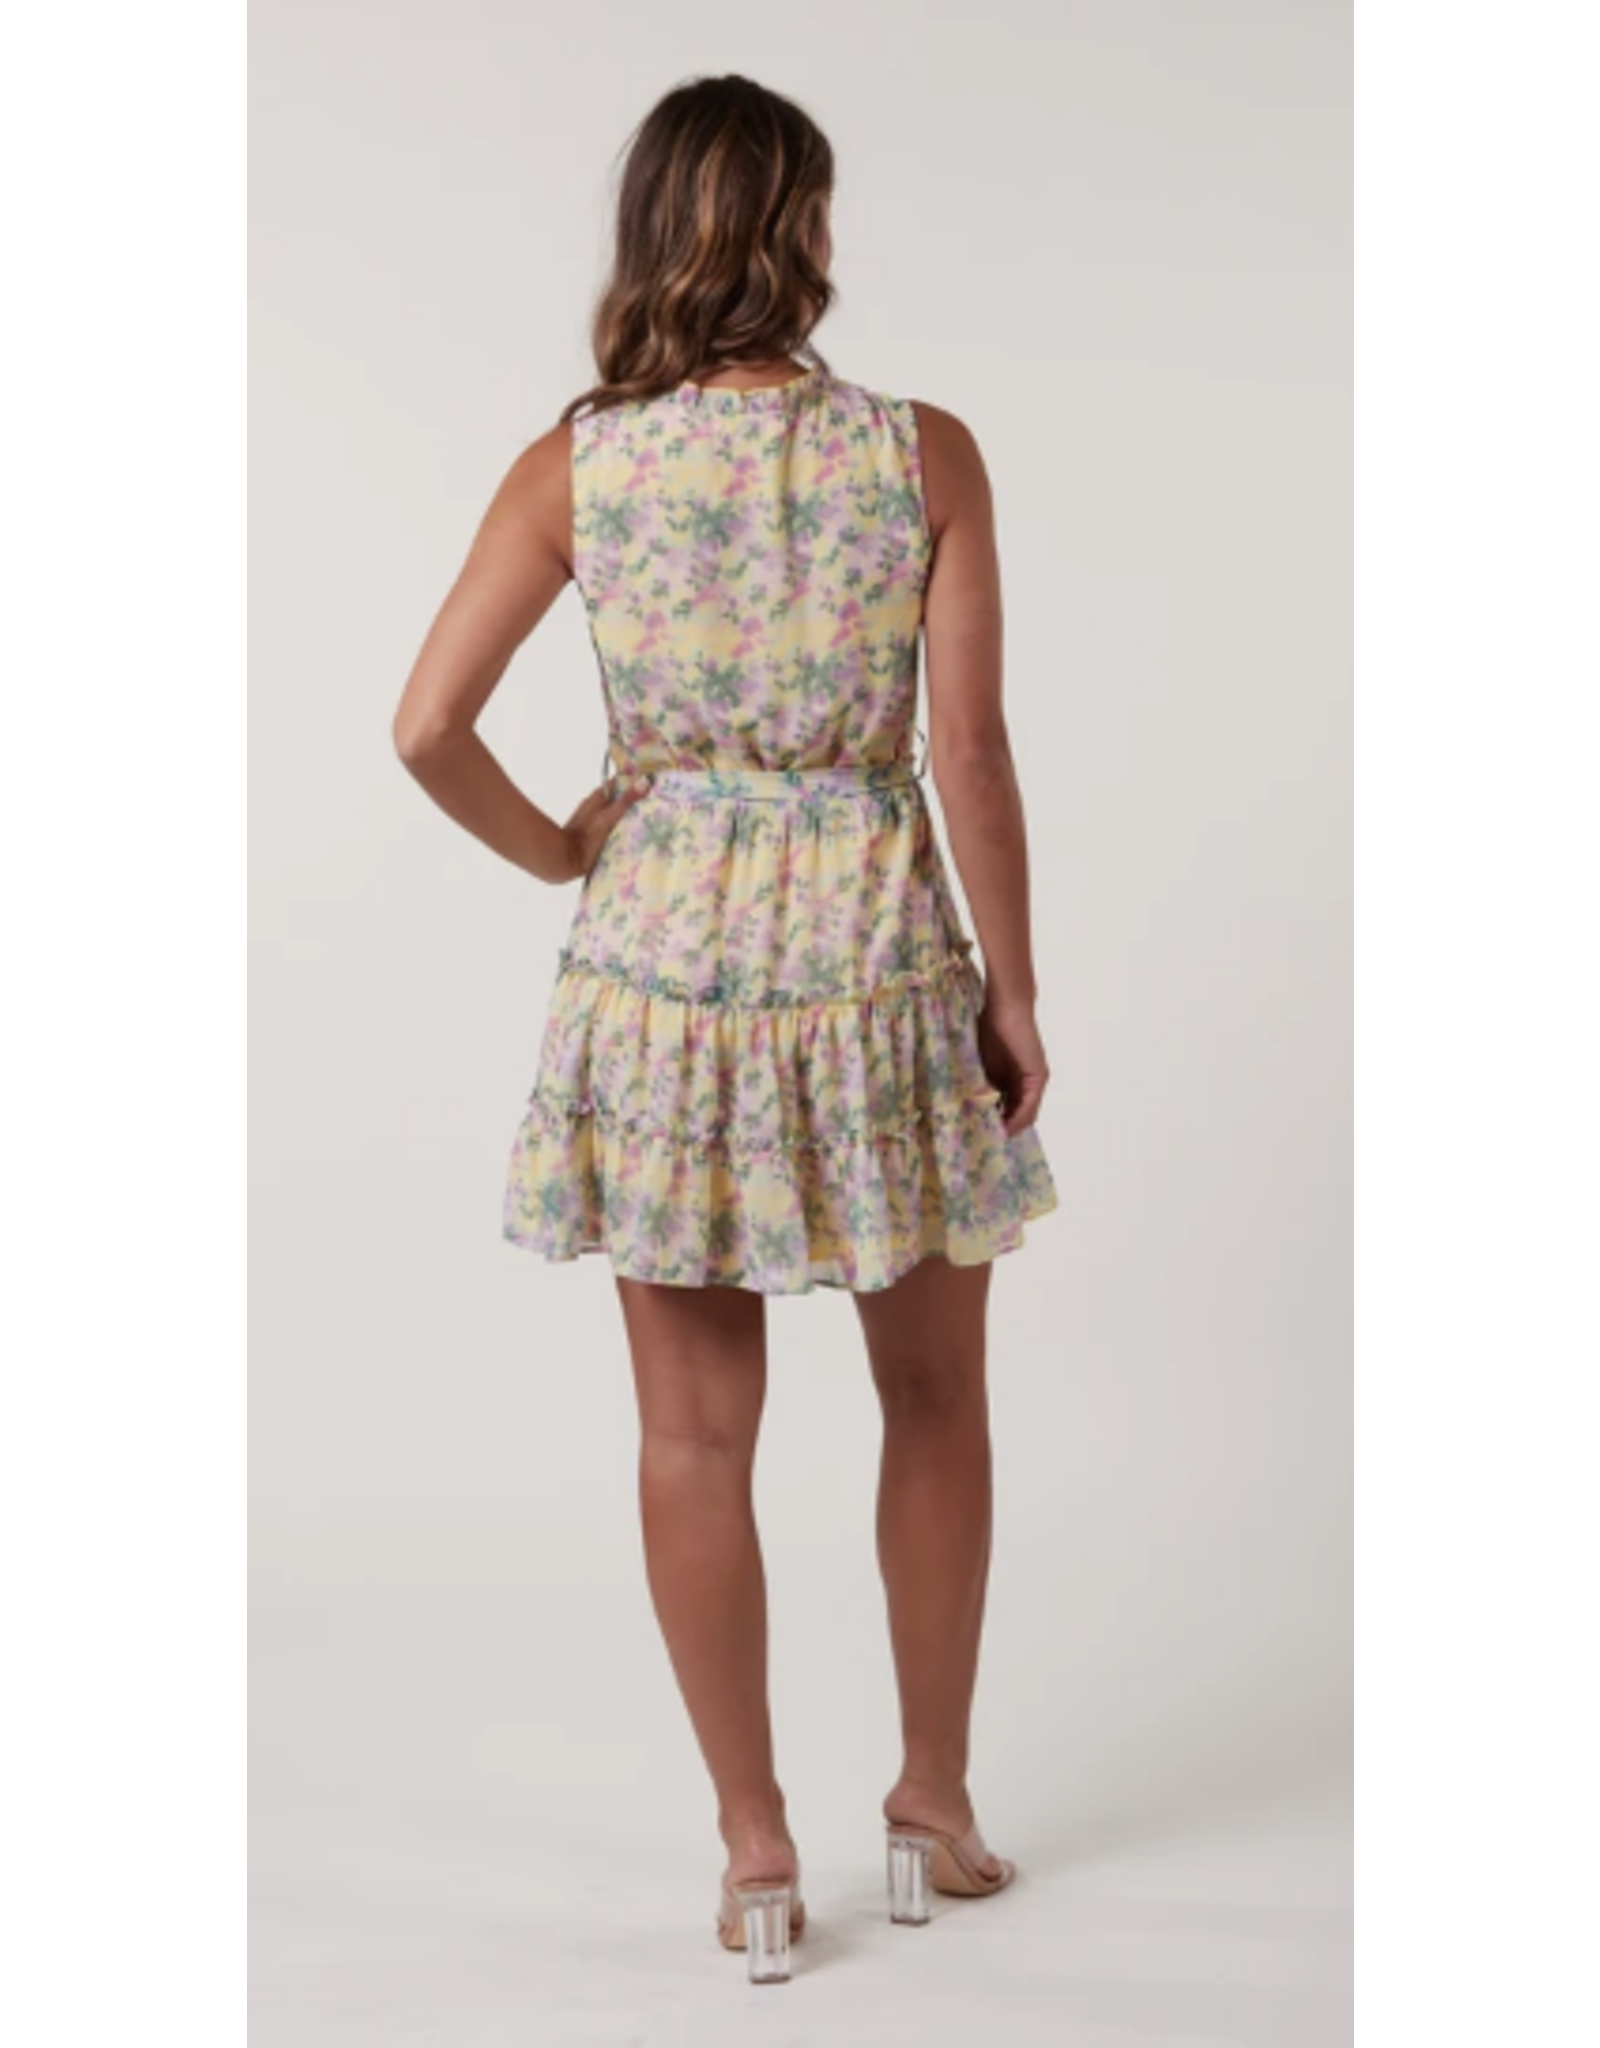 HARPER WREN BARCELONA DRESS